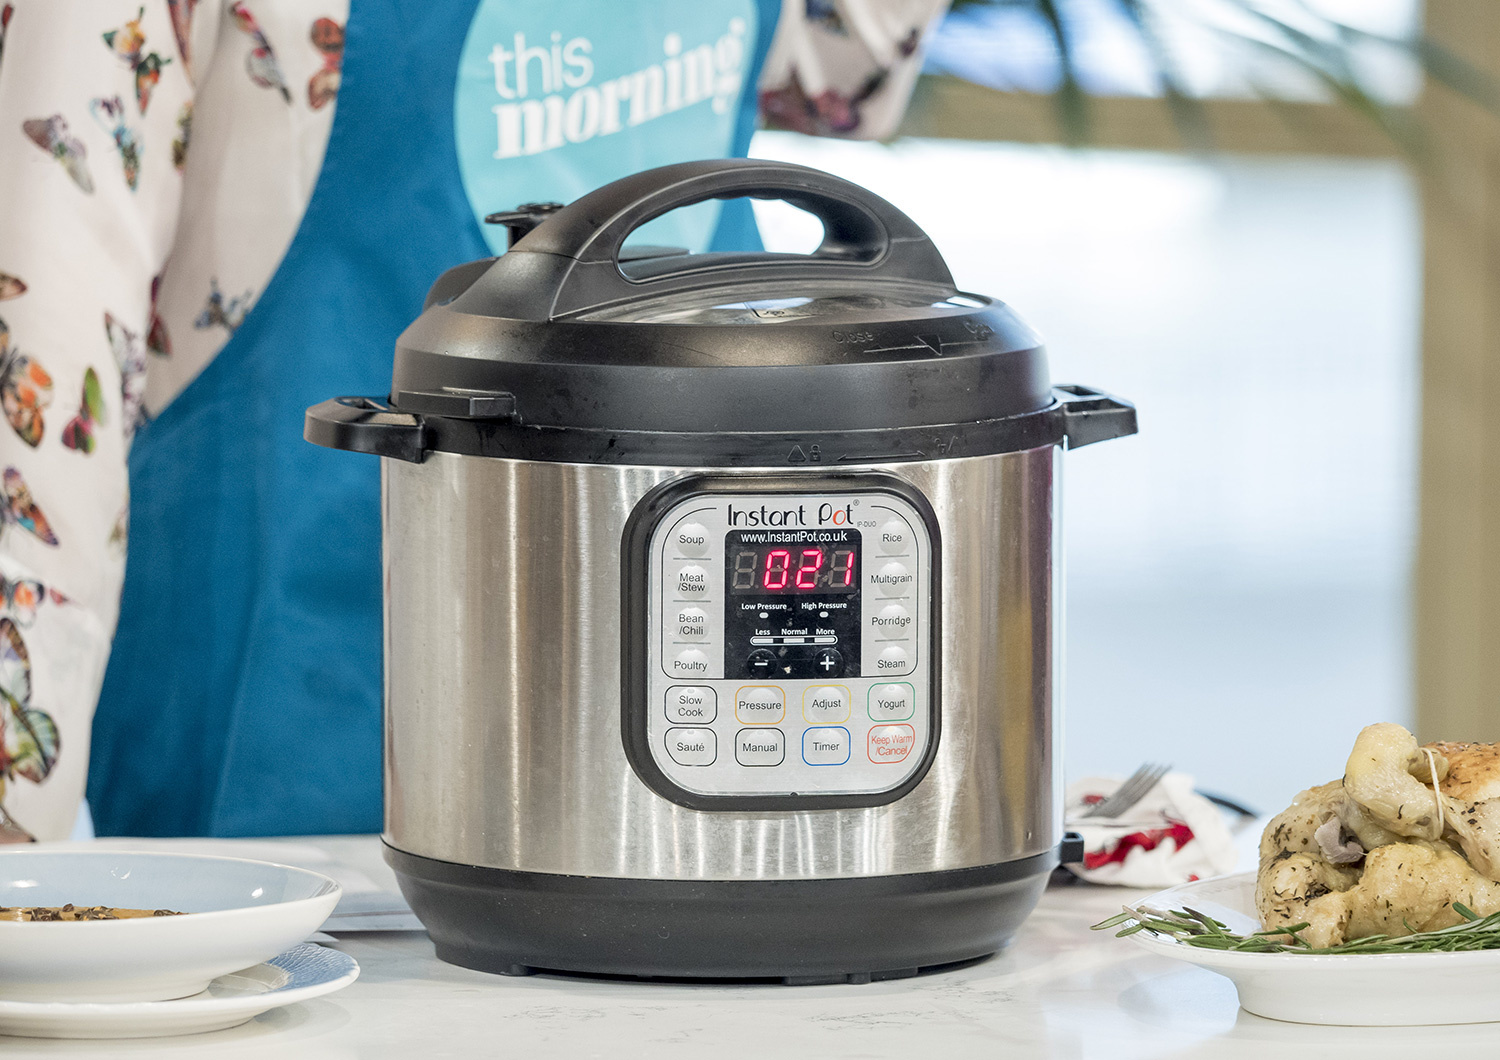 Get this best-selling cookbook with 500 Instant Pot recipes for just $4 today